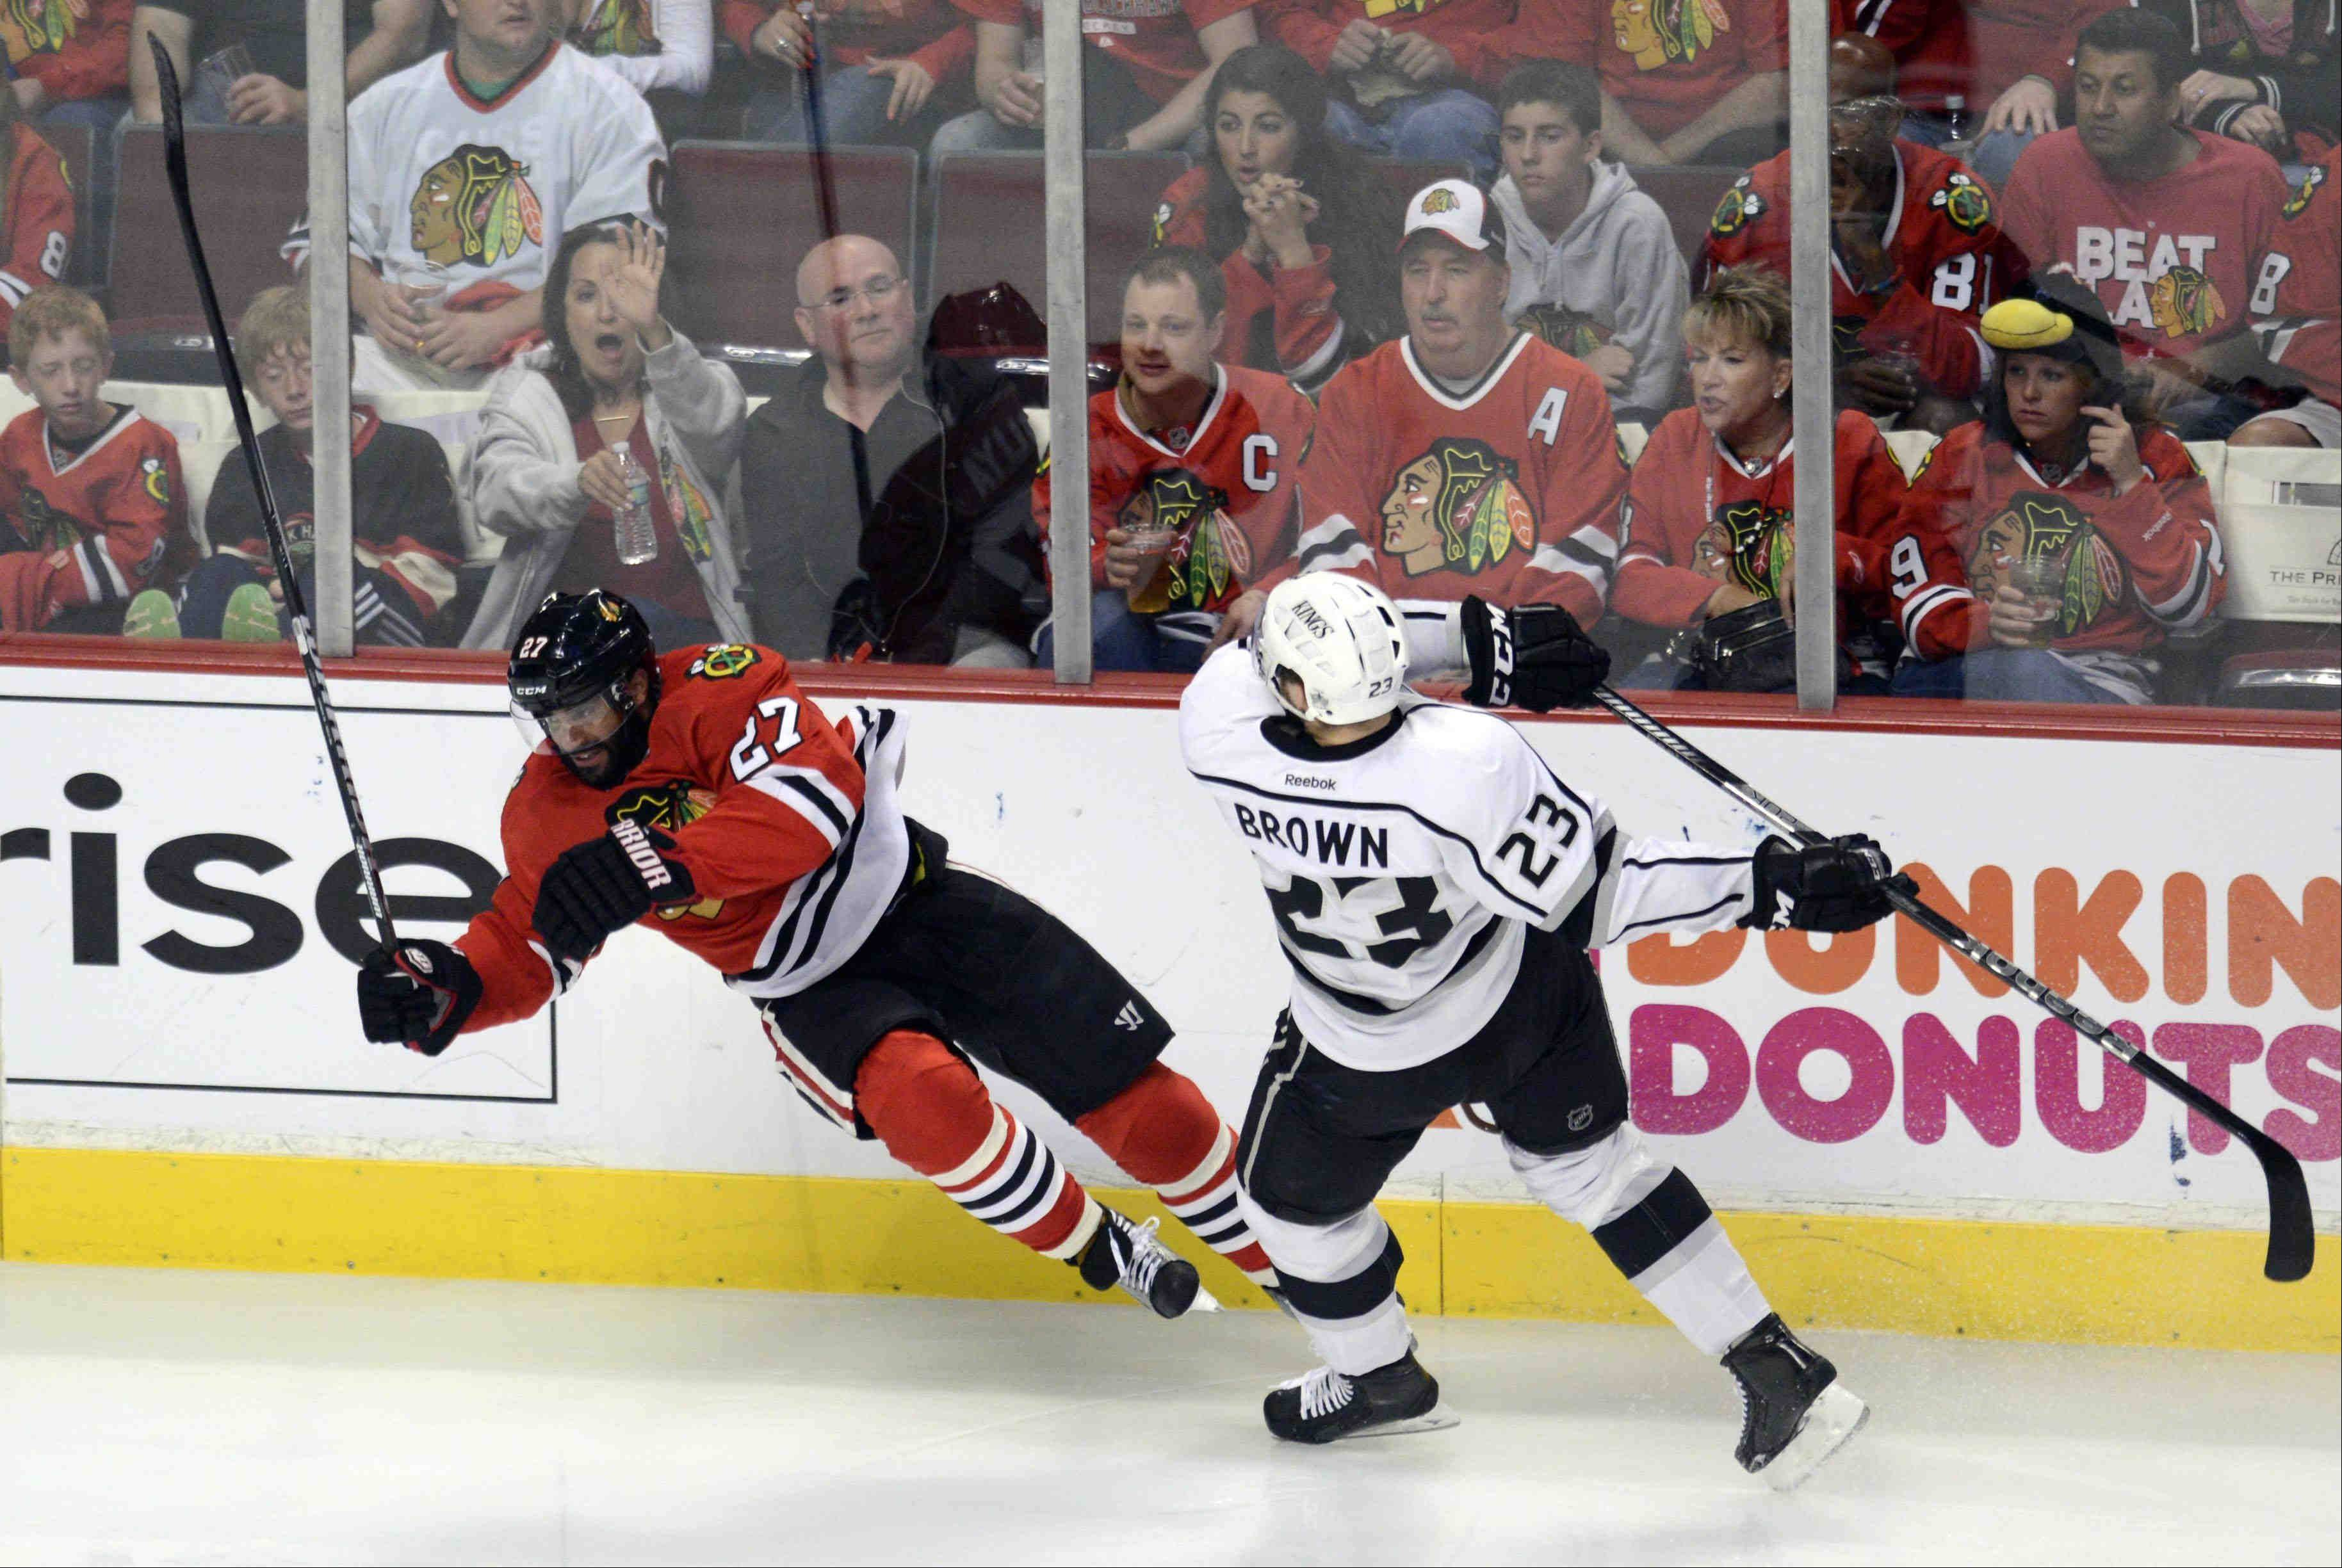 Chicago Blackhawks defenseman Johnny Oduya and Los Angeles Kings right wing Dustin Brown fall to the ice after colliding Saturday during the NHL Western Conference Finals Game 5 at the United Center in Chicago.